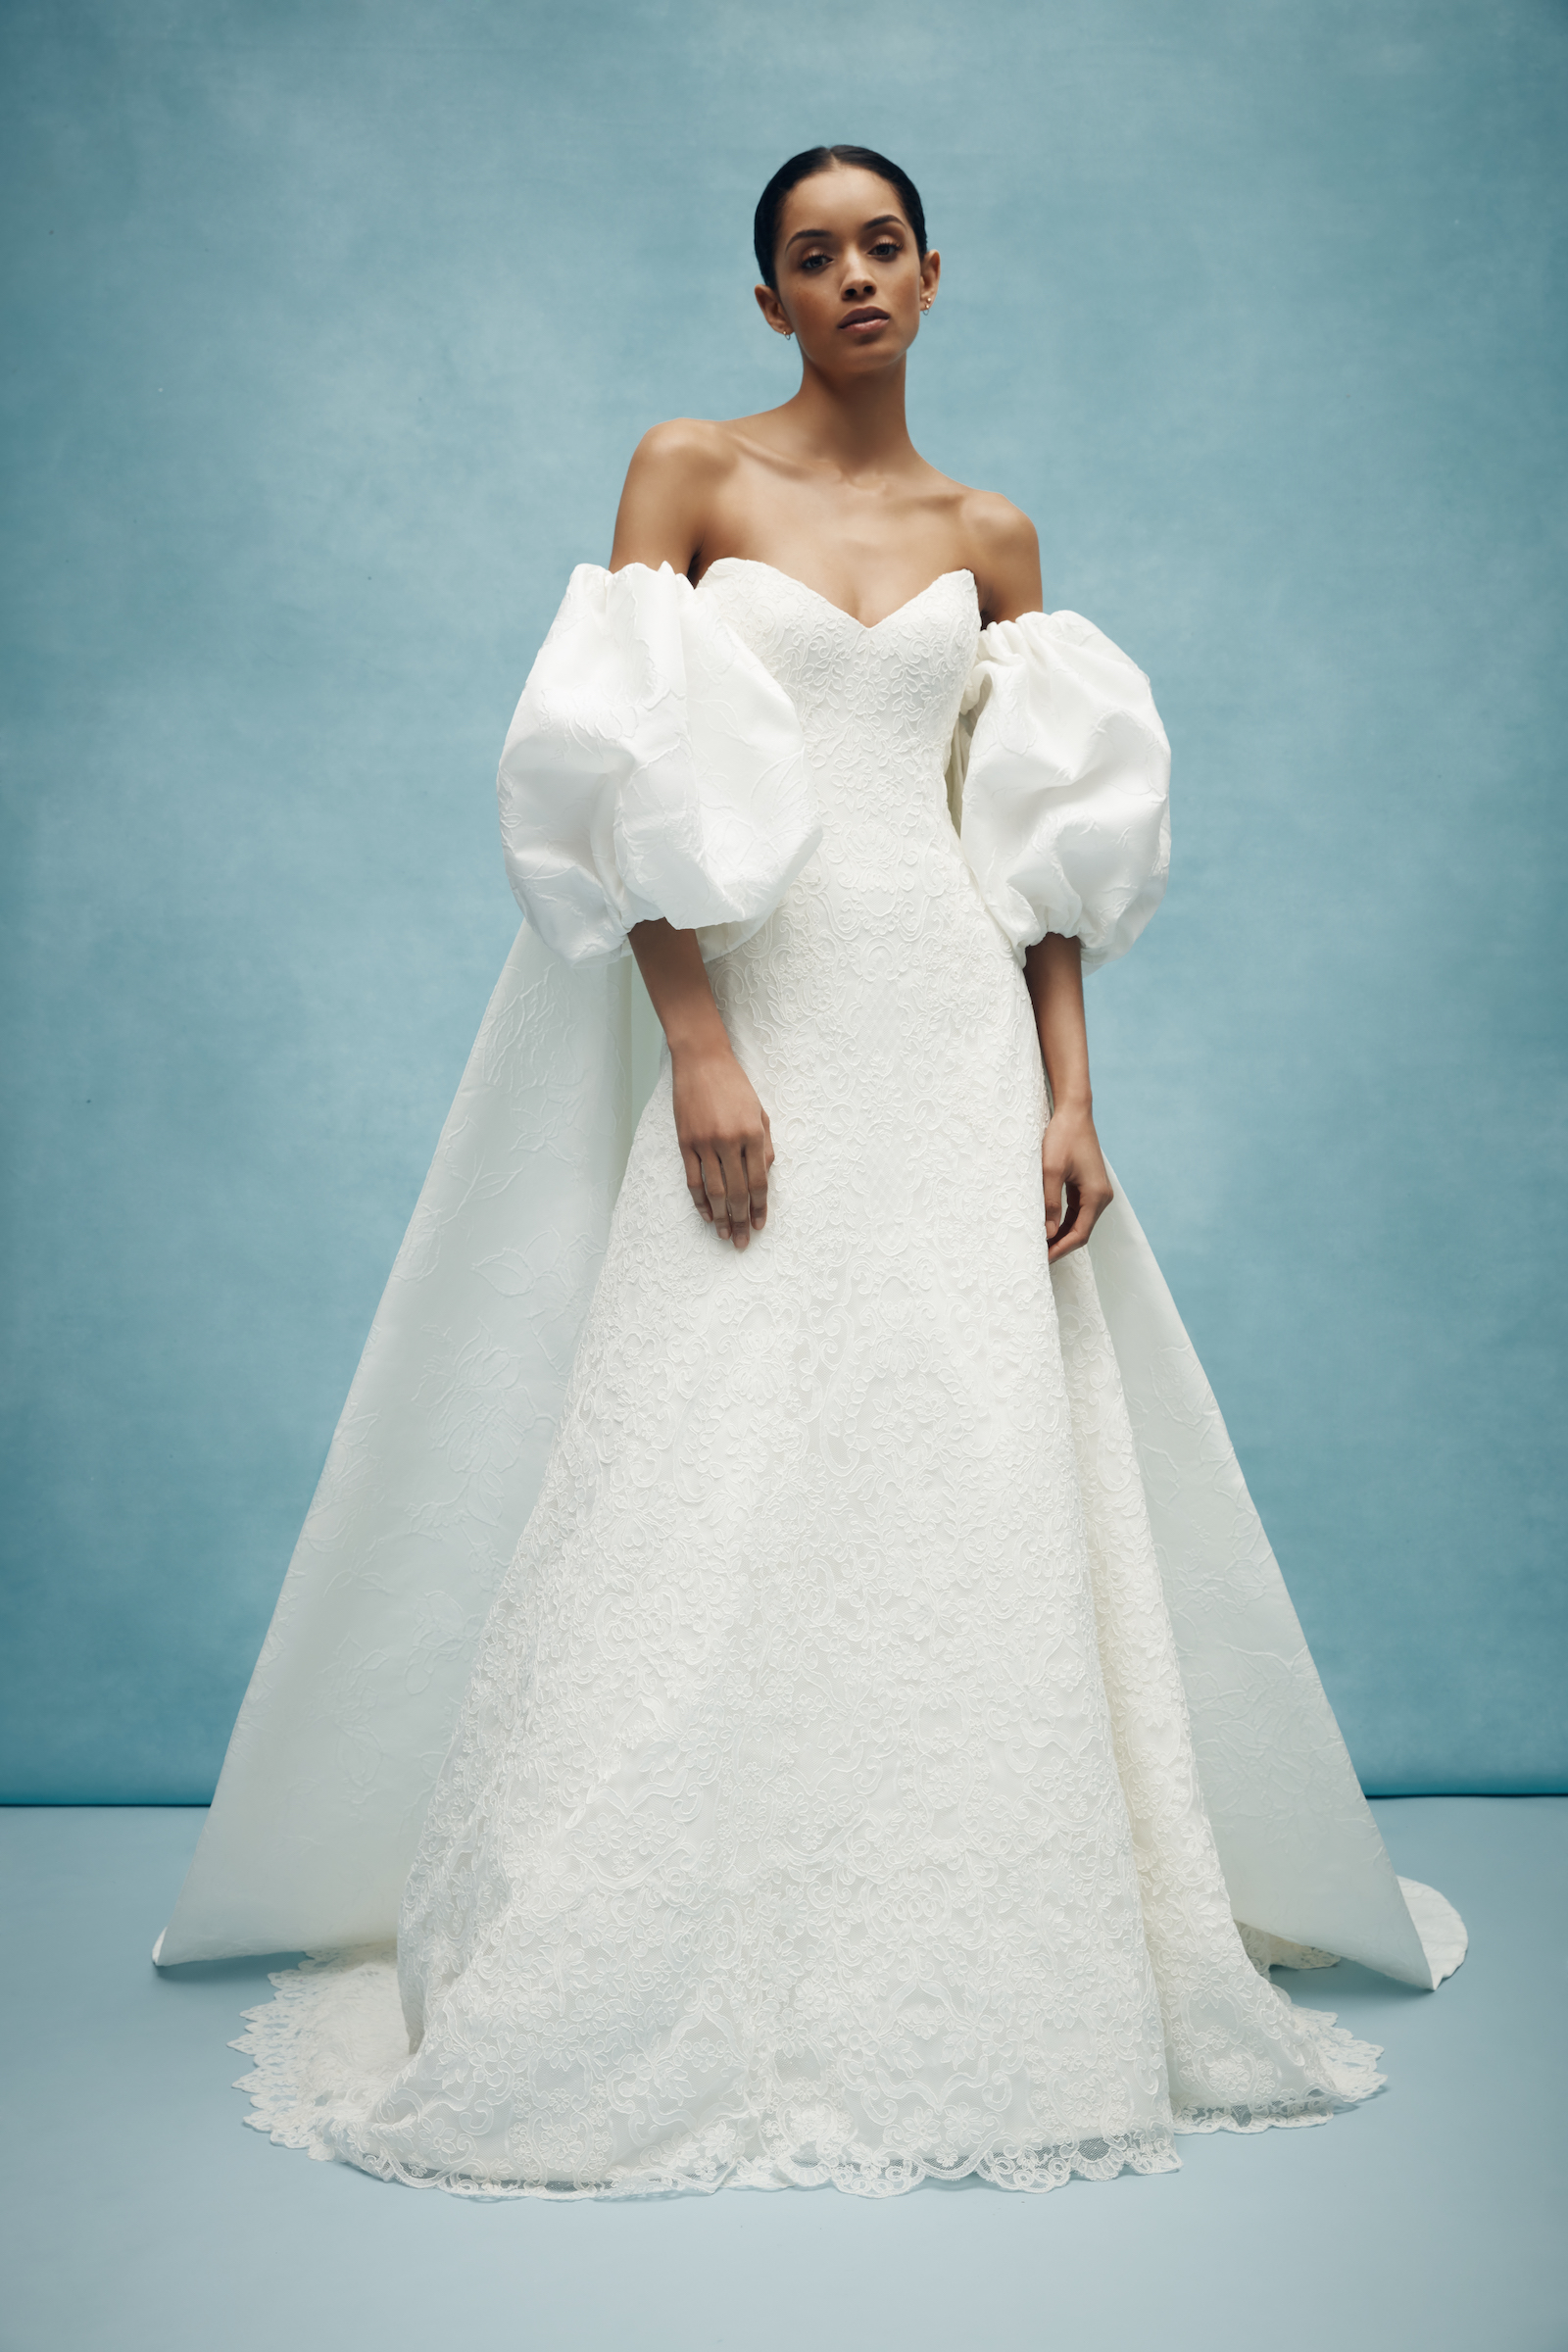 Puffy Sleeves Wedding Dress Trends Anne Barge